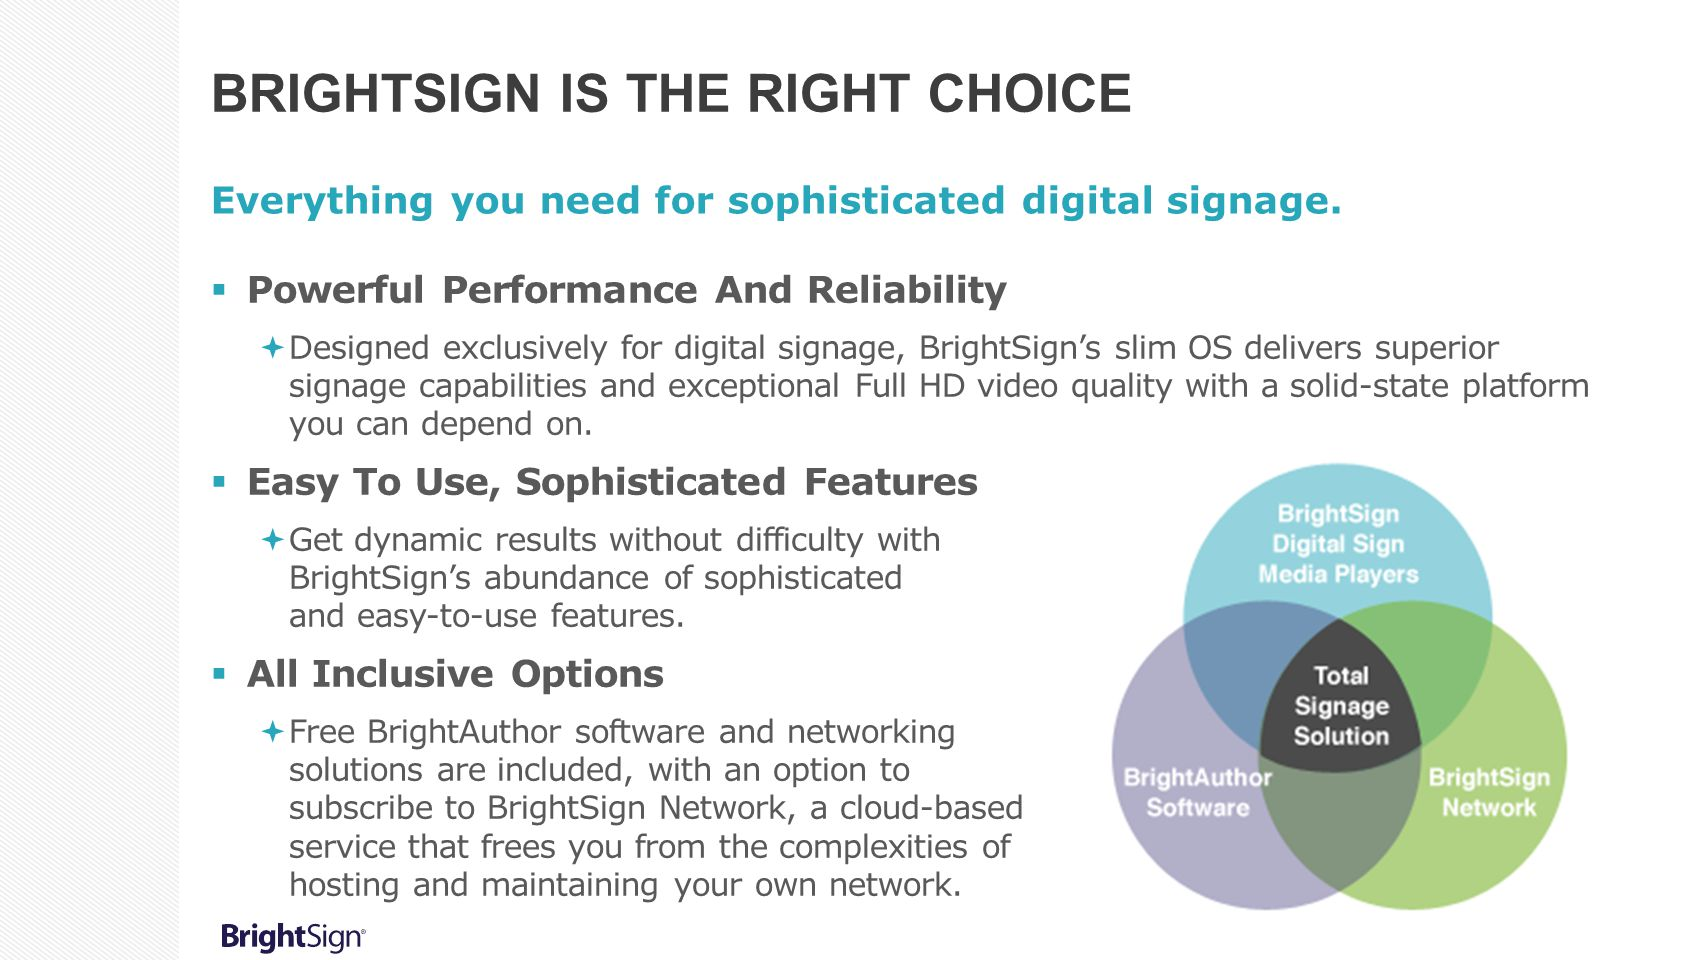 BRIGHTSIGN XD MODELS Exceptional PC-class performance.